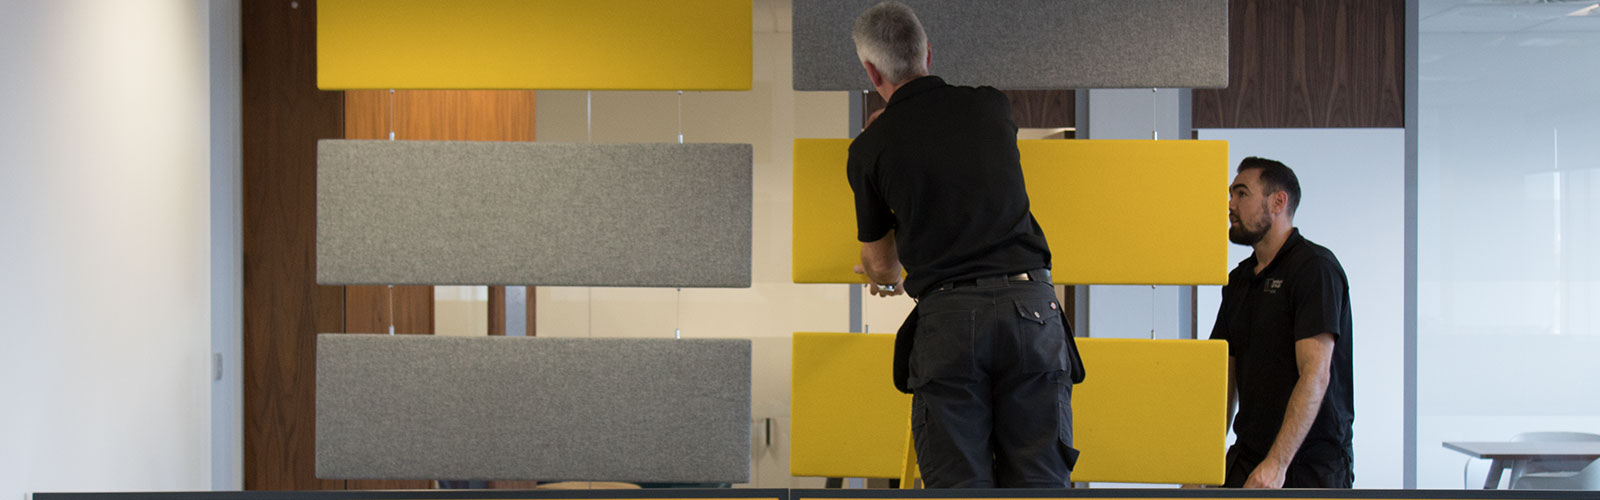 Penketh Group office fit out experts installing yellow and grey furniture